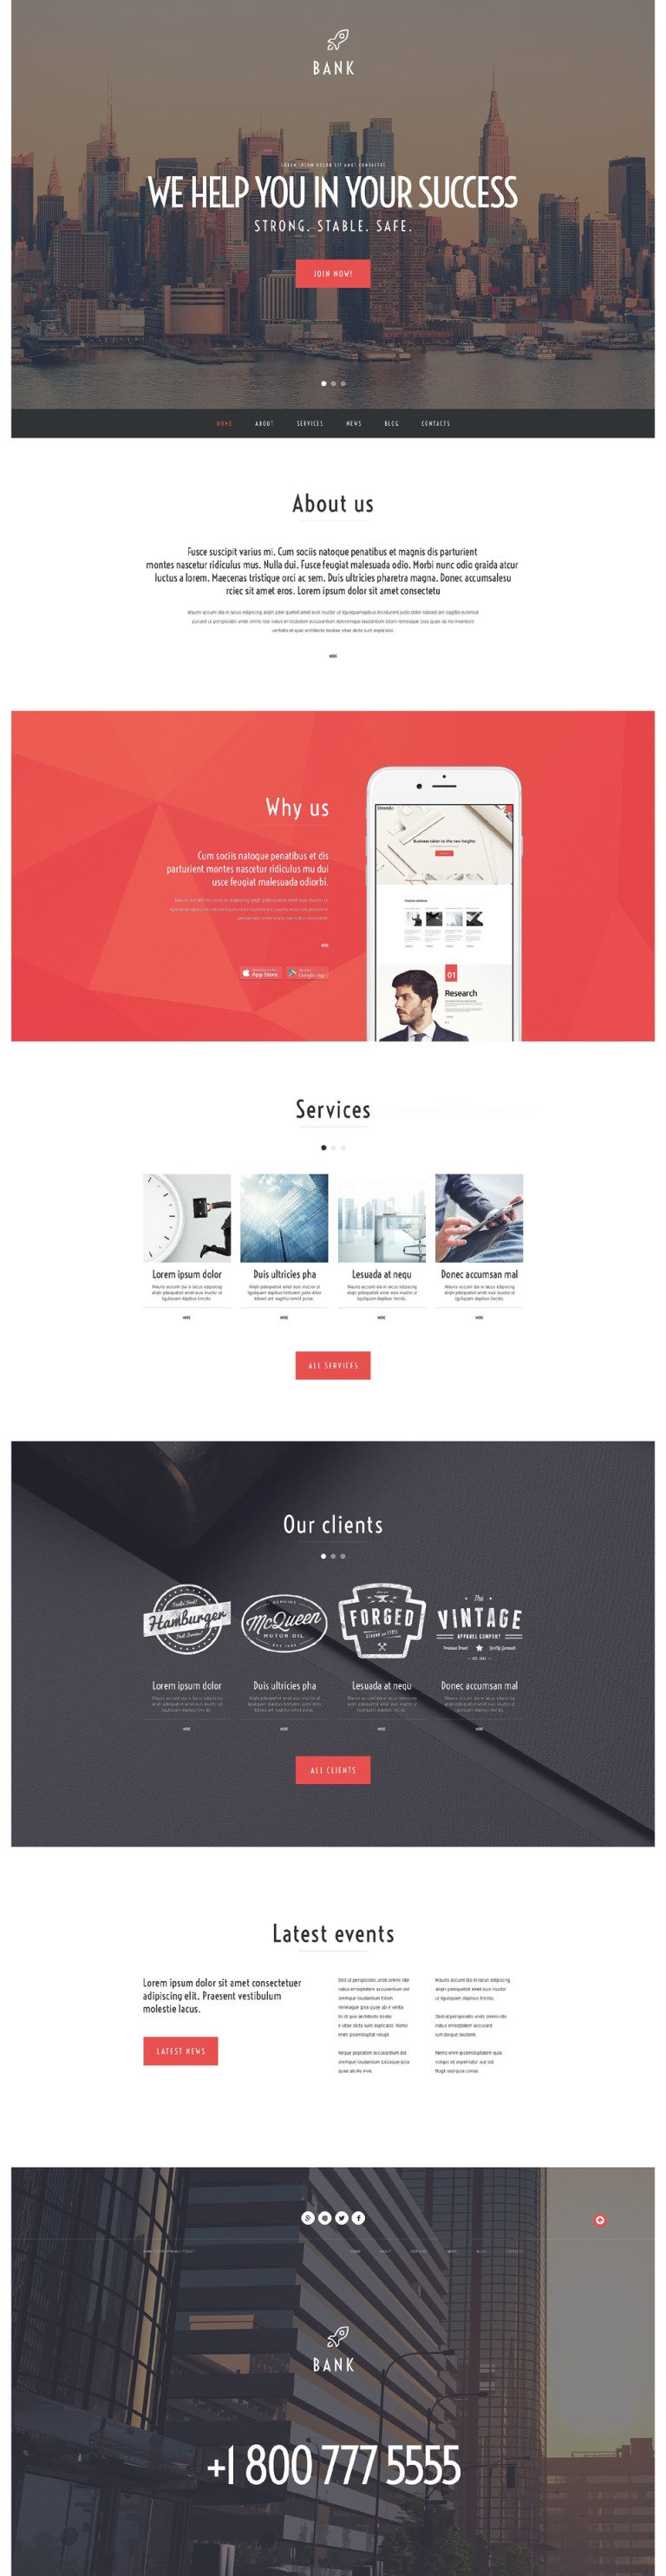 Bank WordPress Theme New Screenshots BIG